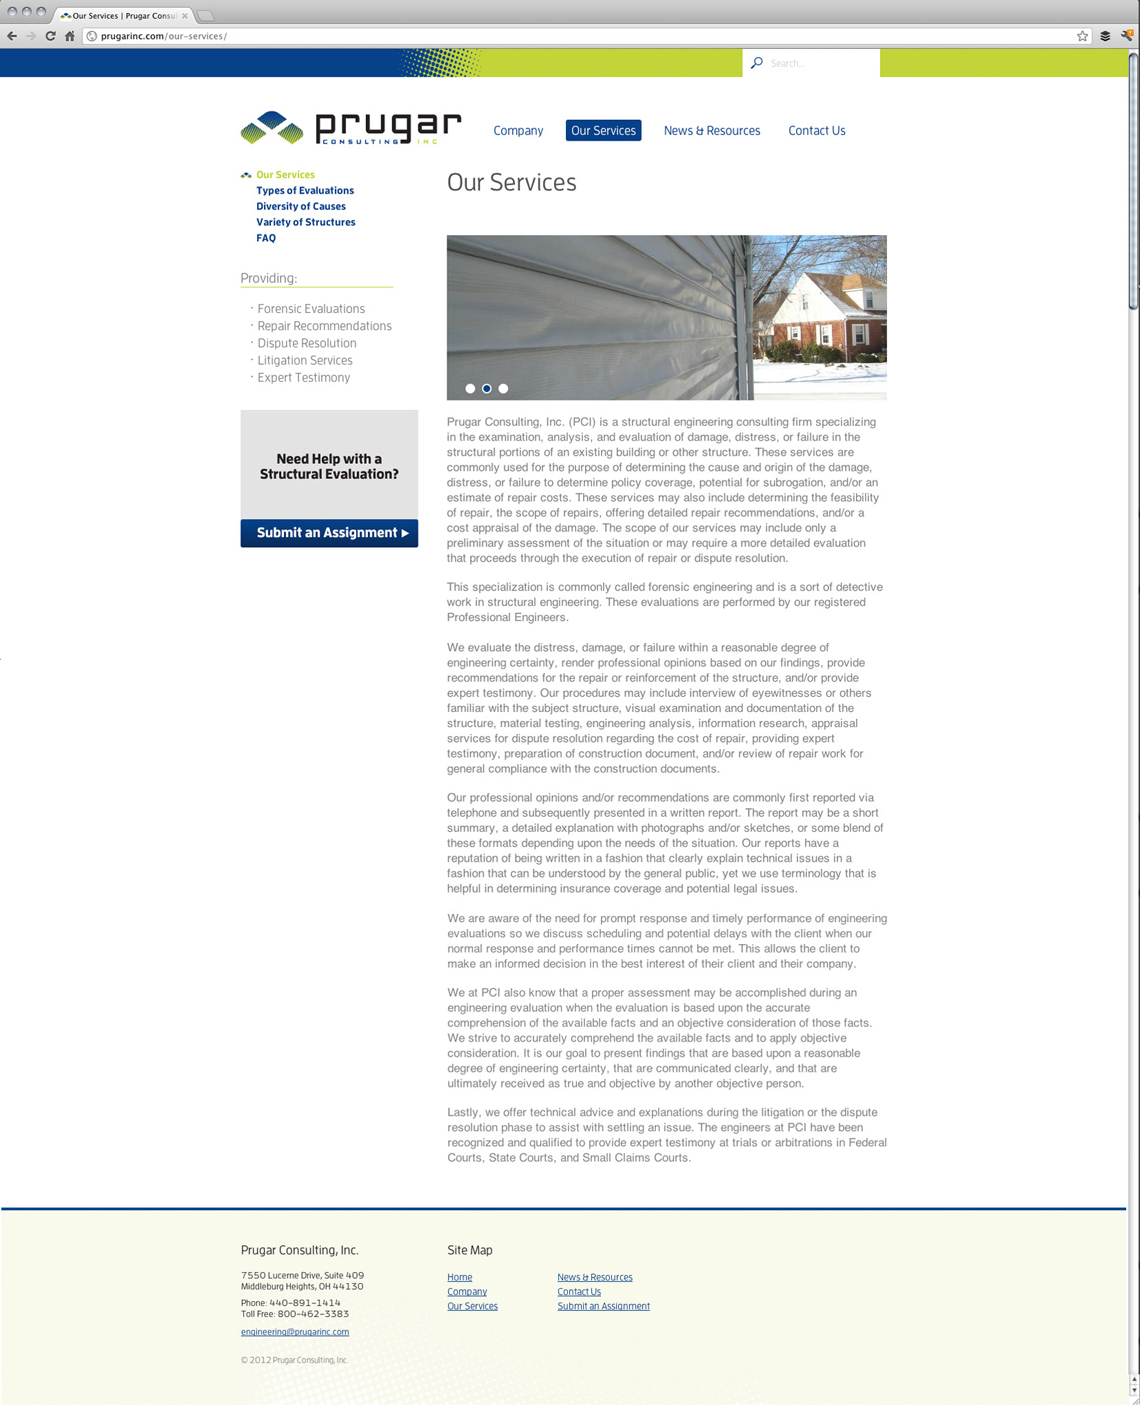 Prugar Consulting Website Design Services Page